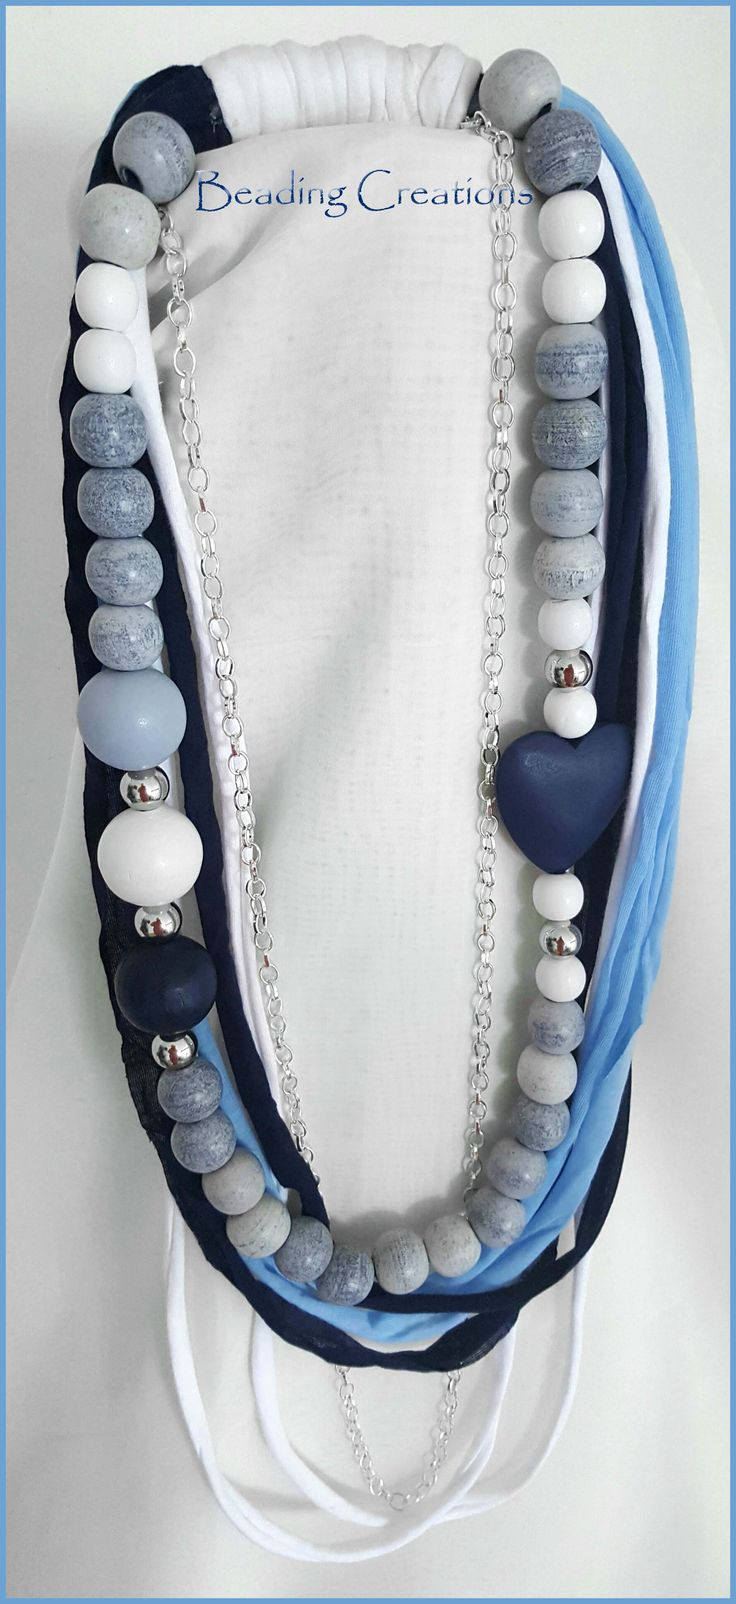 NEW HANDMADE ONE OF A KIND DESIGNER WOODEN BEADS AND T-SHIRT YARN NECKLACE IN WHITE, NAVY BLUE AND BABY BLUE WITH A CONTRAST OF STONEWASHED DENIM BLUE WOODEN BEADS AND NAVY BLUE WOODEN HEART AVAILABLE FOR R150.00 AT: http://www.bidorbuy.co.za/seller/366992/Beadingcreations